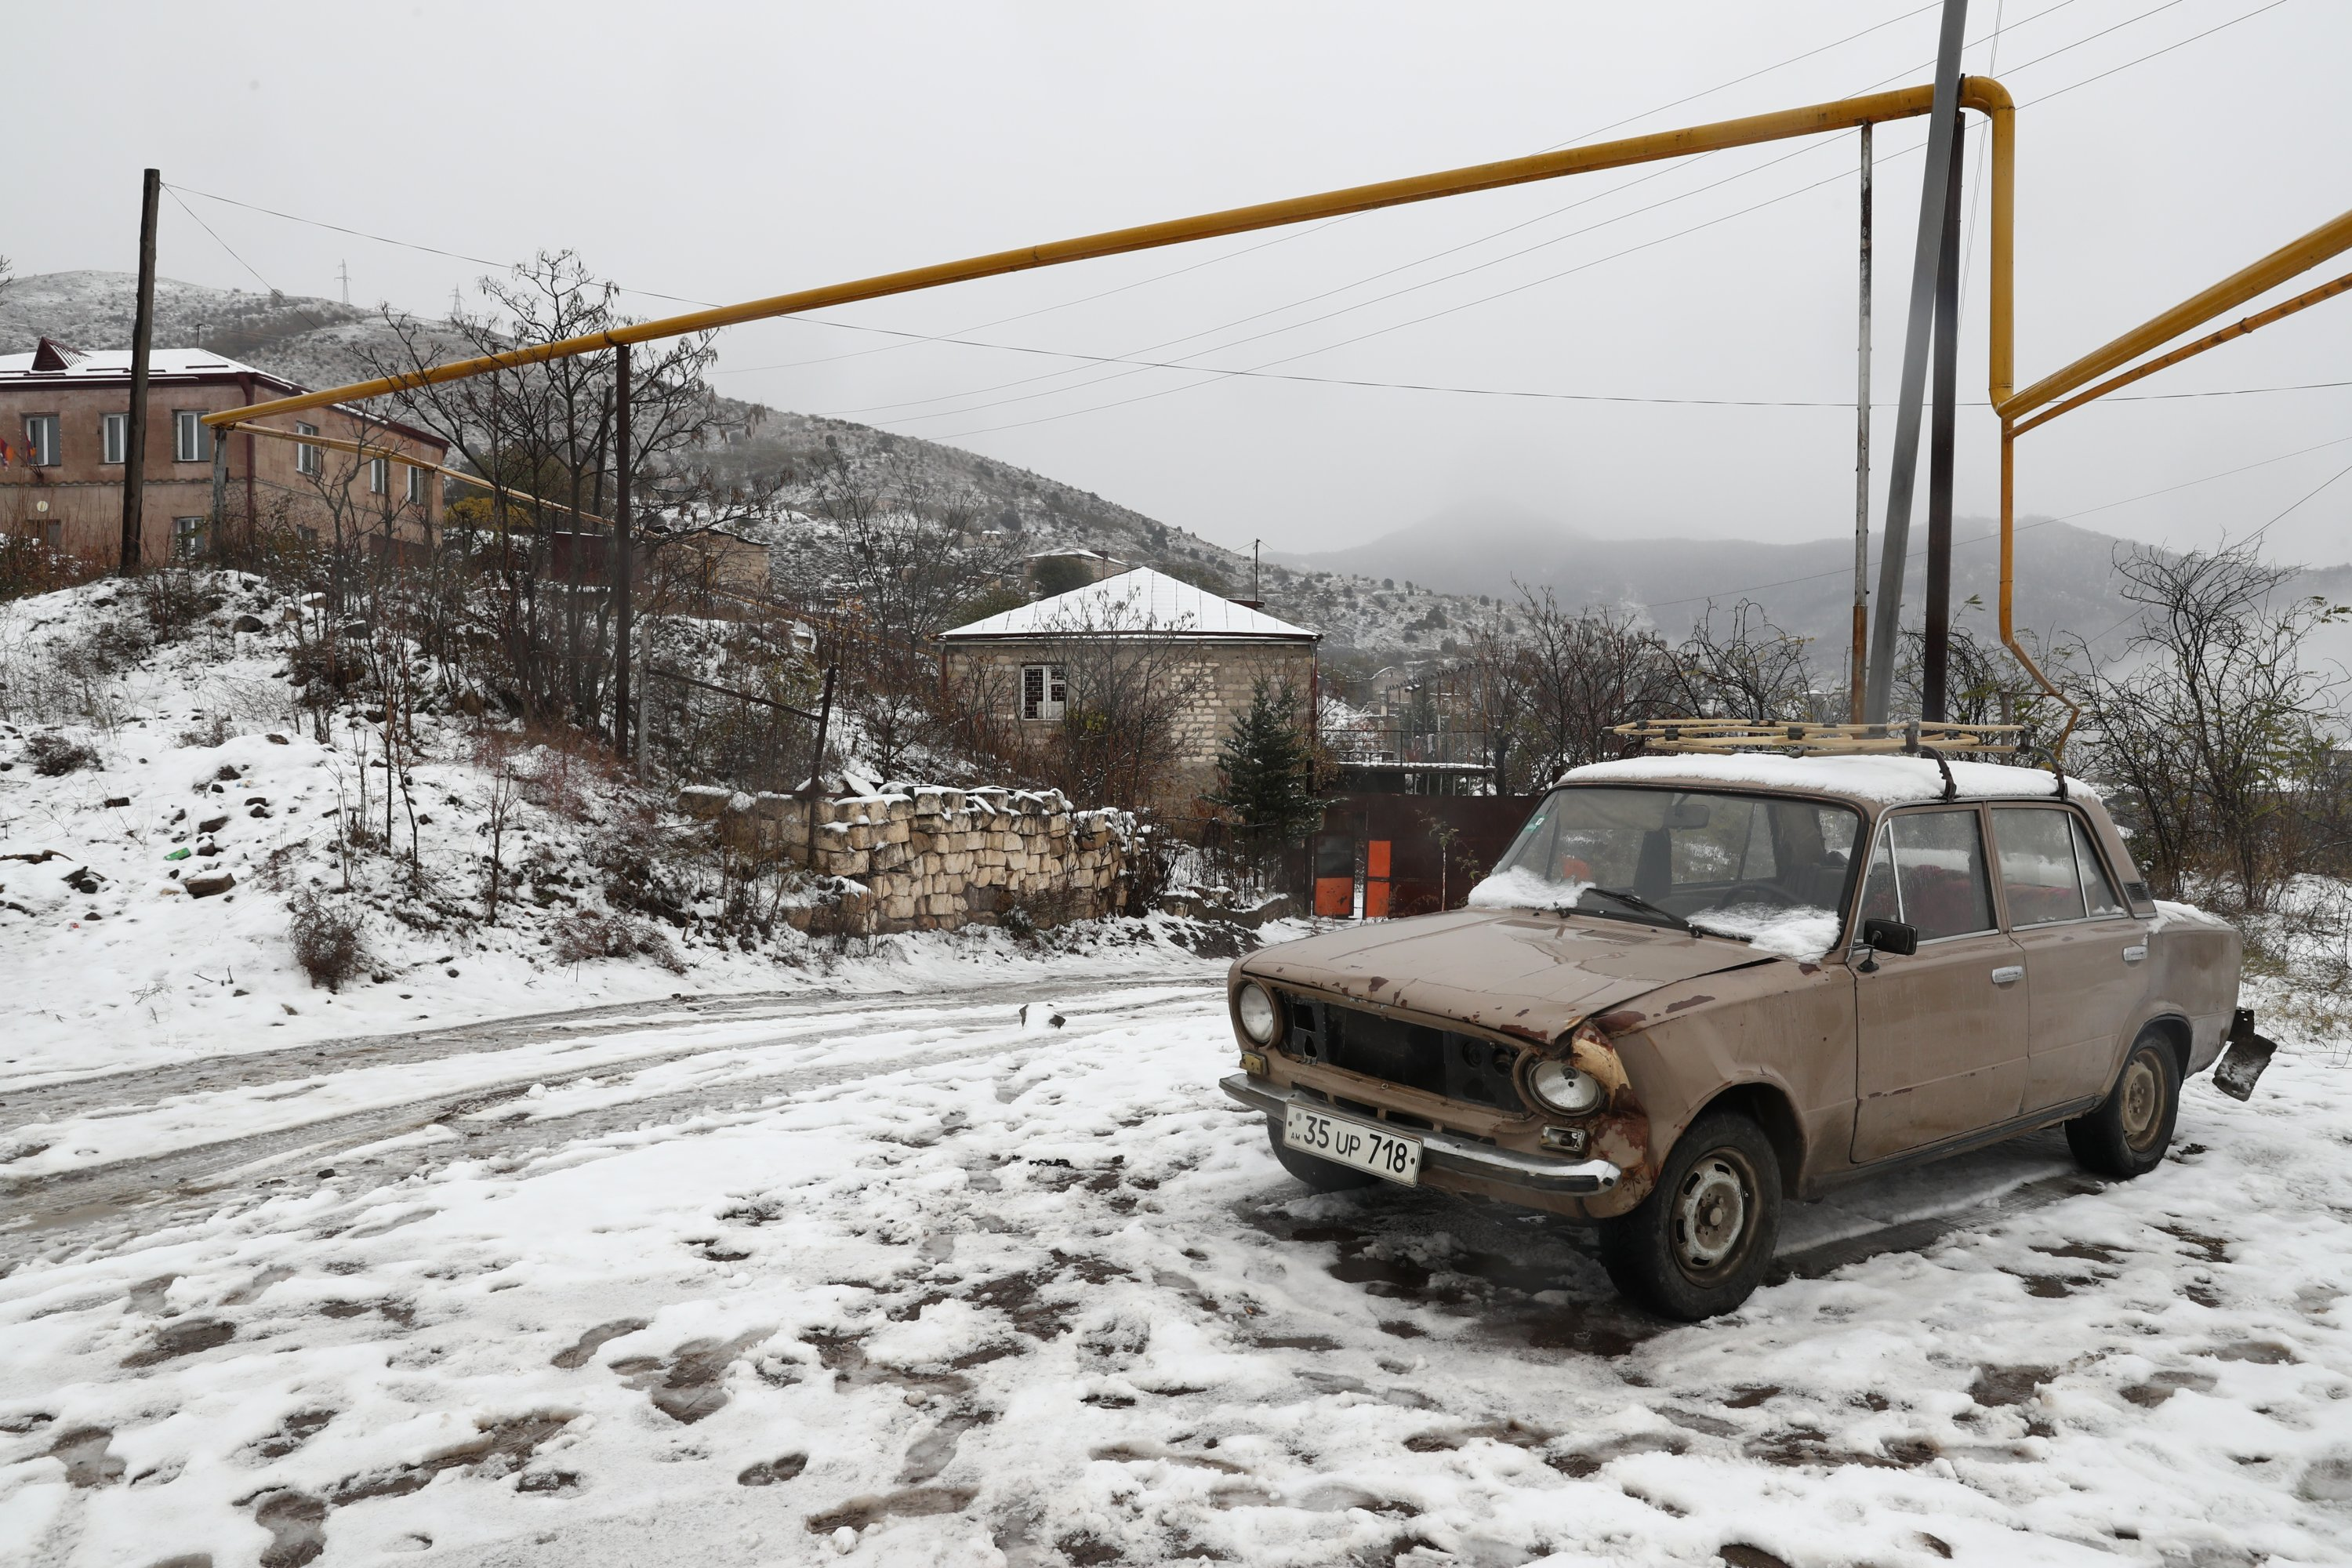 A view of a residential neighborhood in the town of Lachin, Nagorno-Karabakh. (Alexander Ryumin / TASS via Reuters)